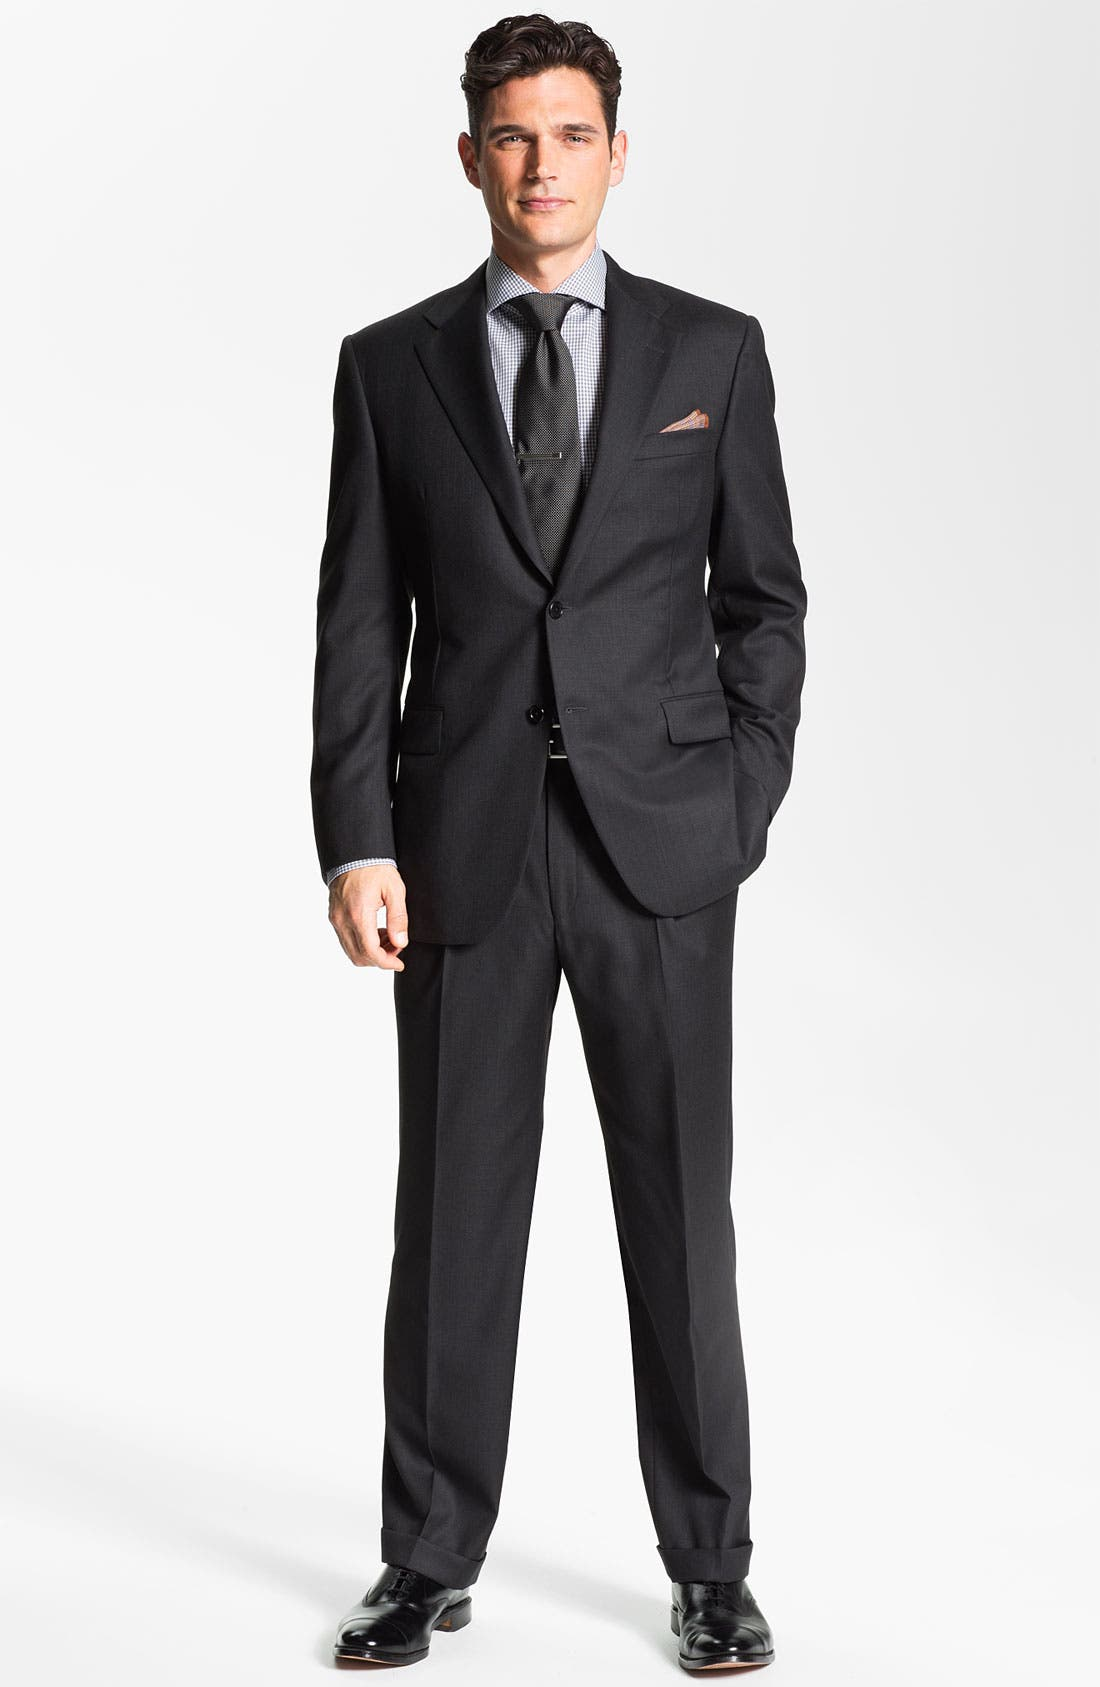 Main Image - Hickey Freeman Charcoal Worsted Wool Suit